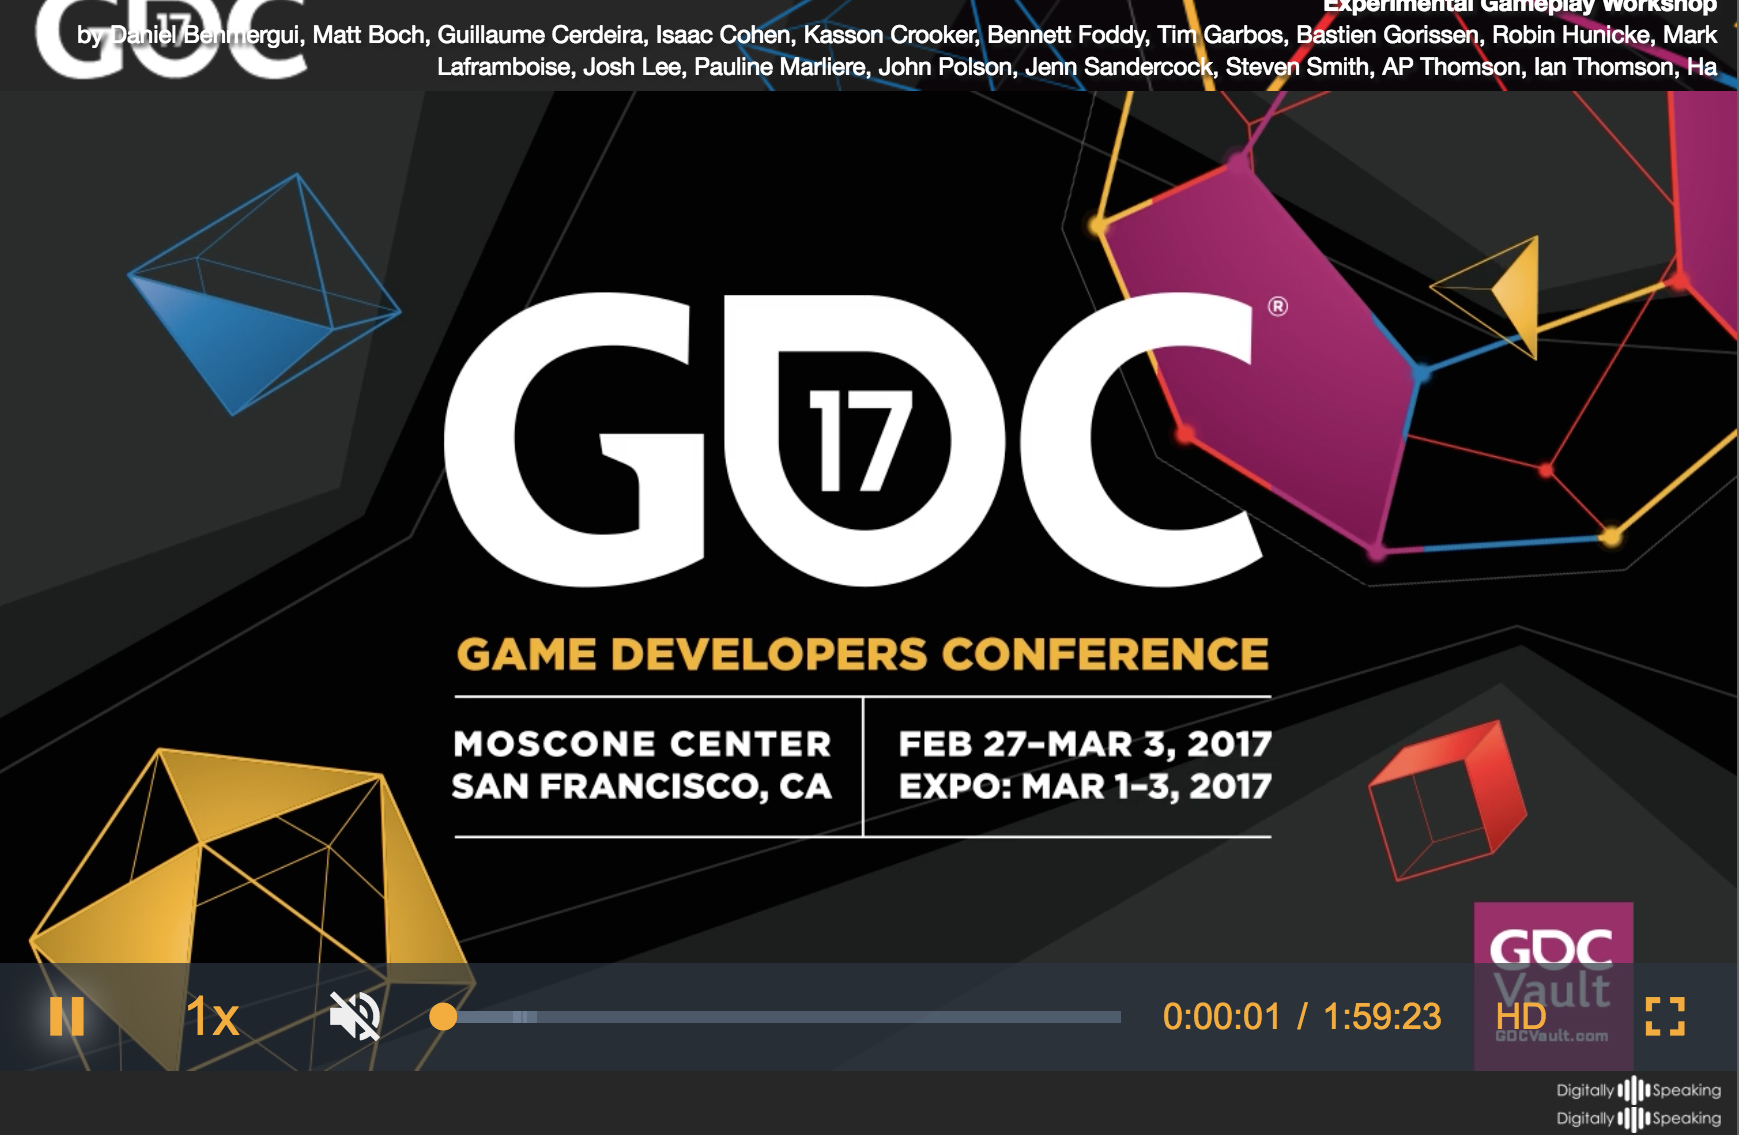 https://www.gdcvault.com/play/1024377/Experimental-Gameplay